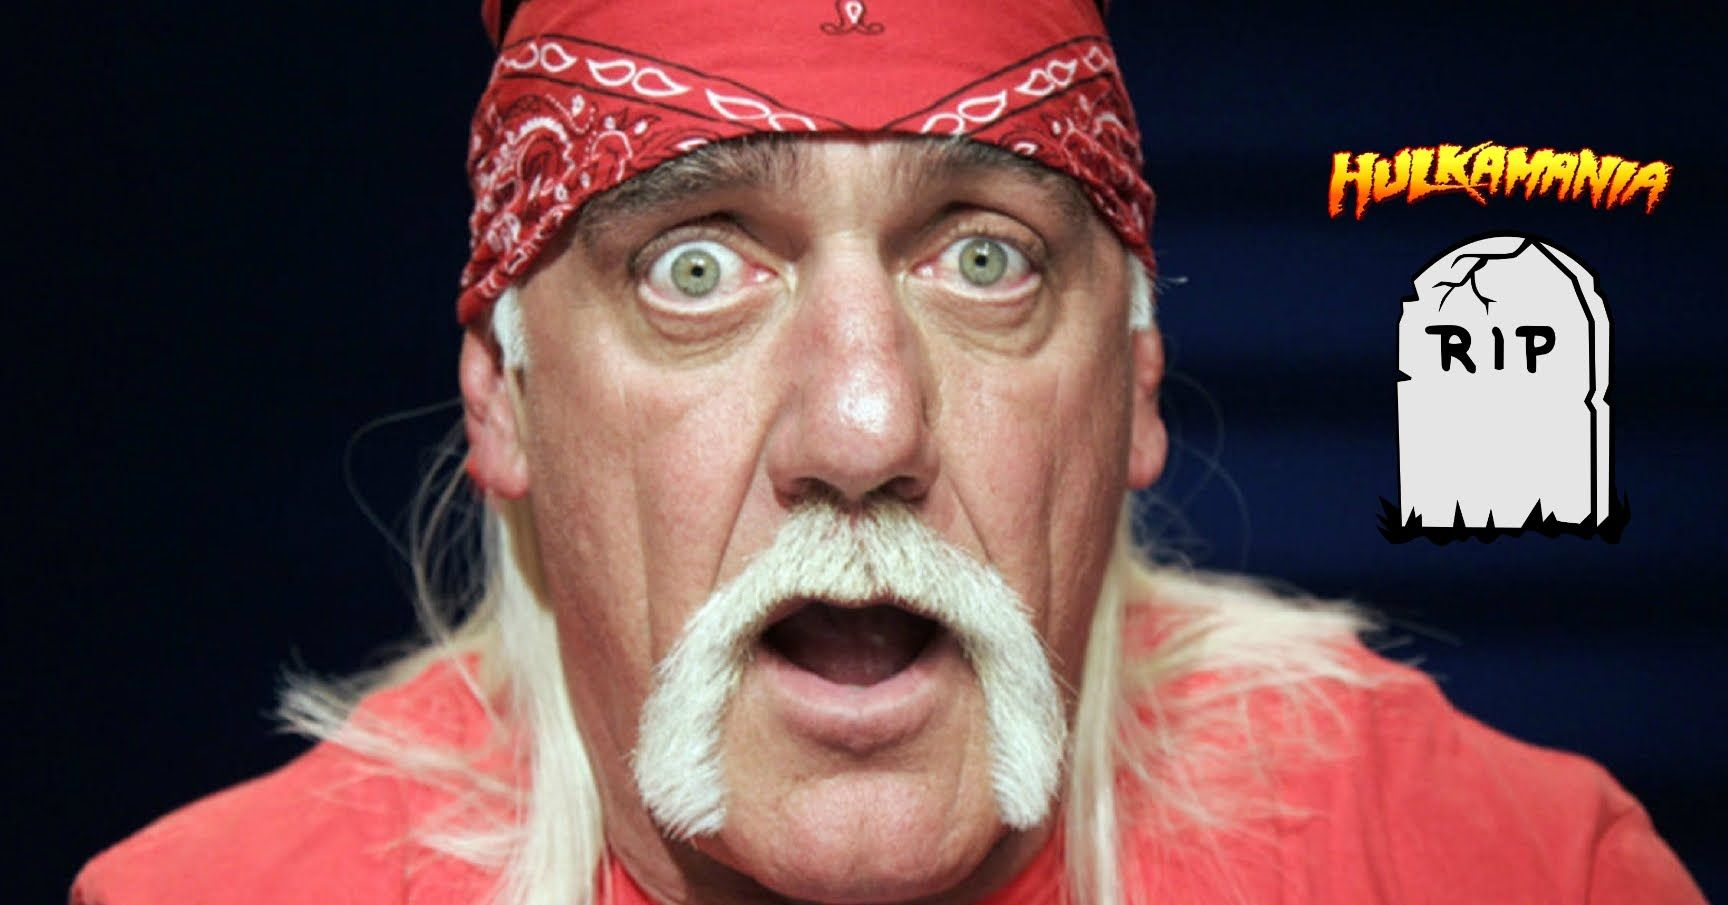 Top 10 Hulk Hogan Controversies